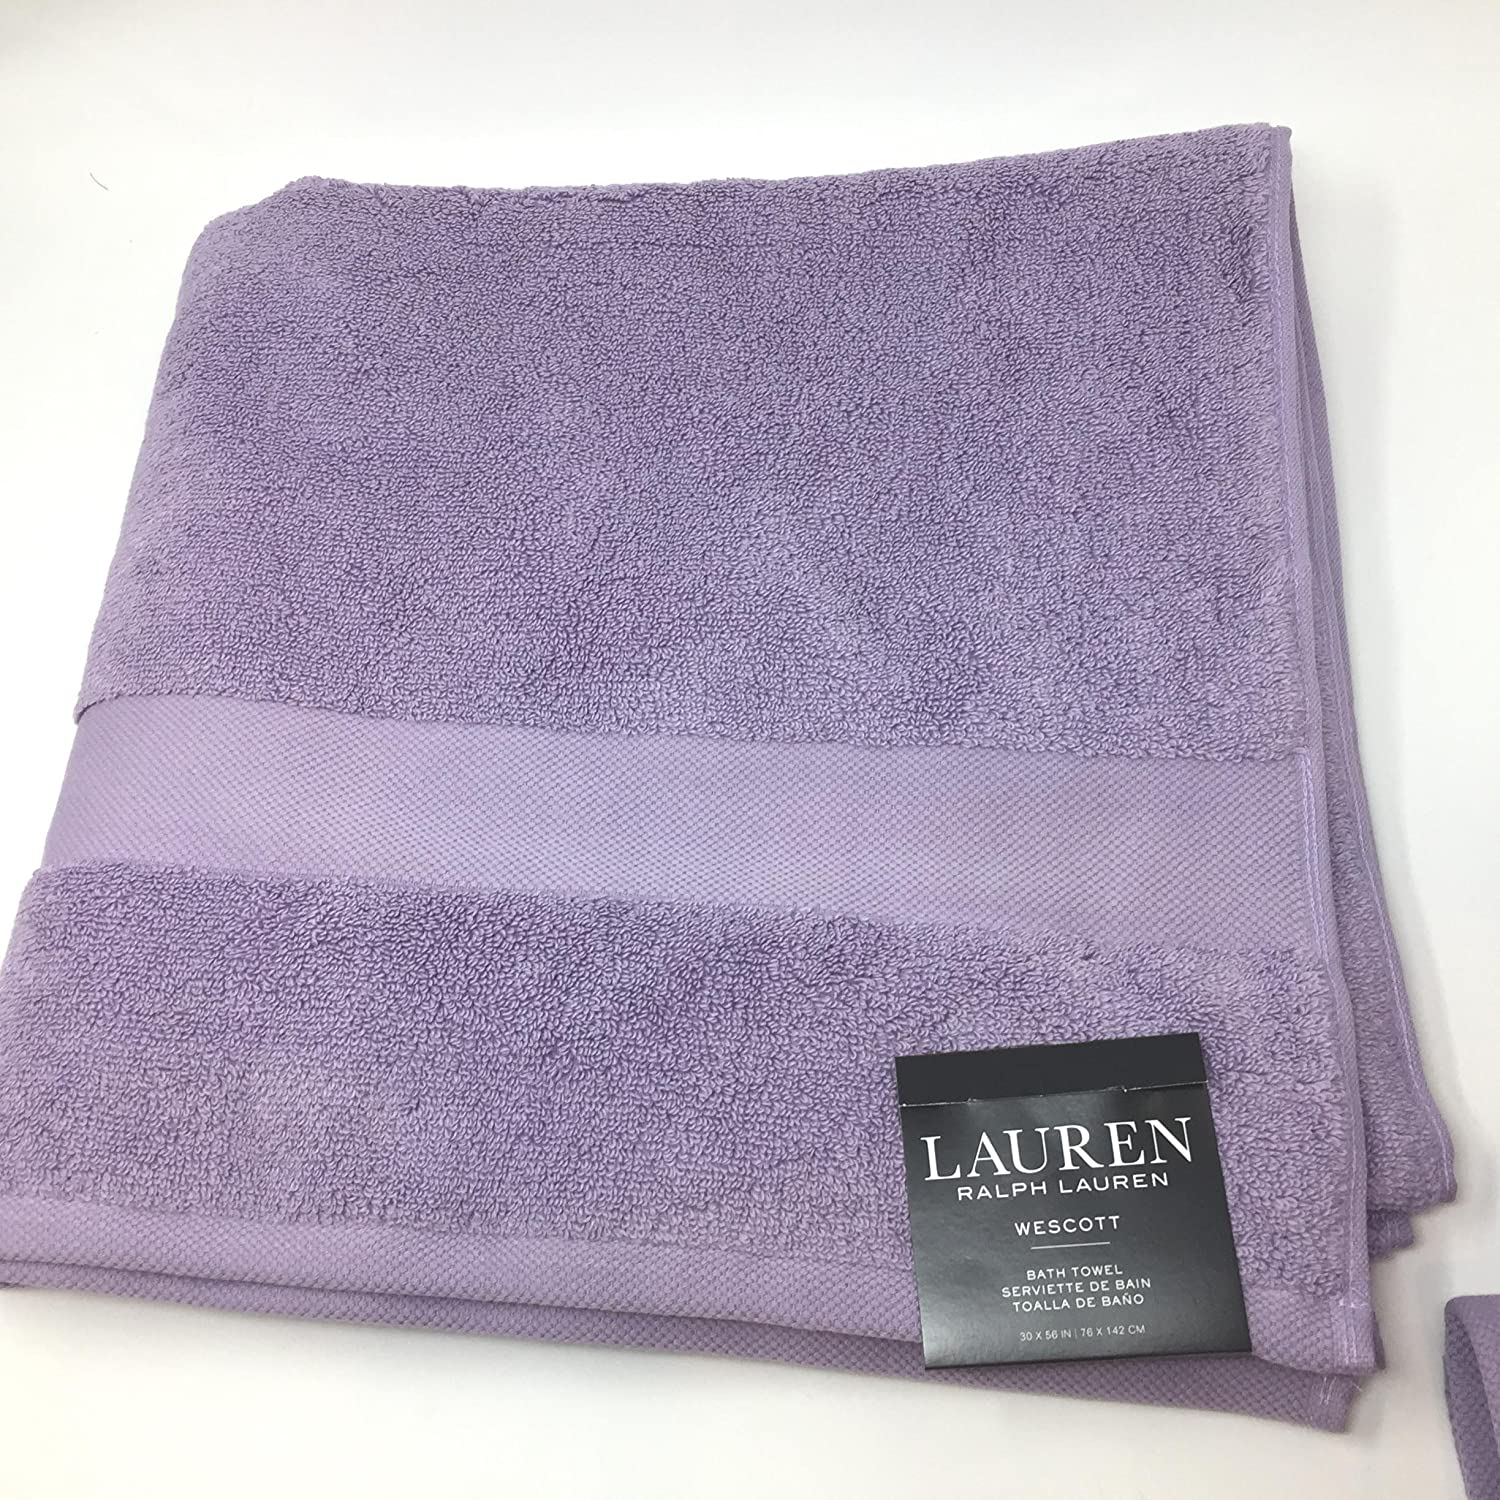 Amazon.com: Lauren Ralph Lauren Wescott Duchess Lilac Towel 6 Piece Set Bundle - 2 Bath Towels, 2 Hand Towels, 2 Washcloths: Home & Kitchen